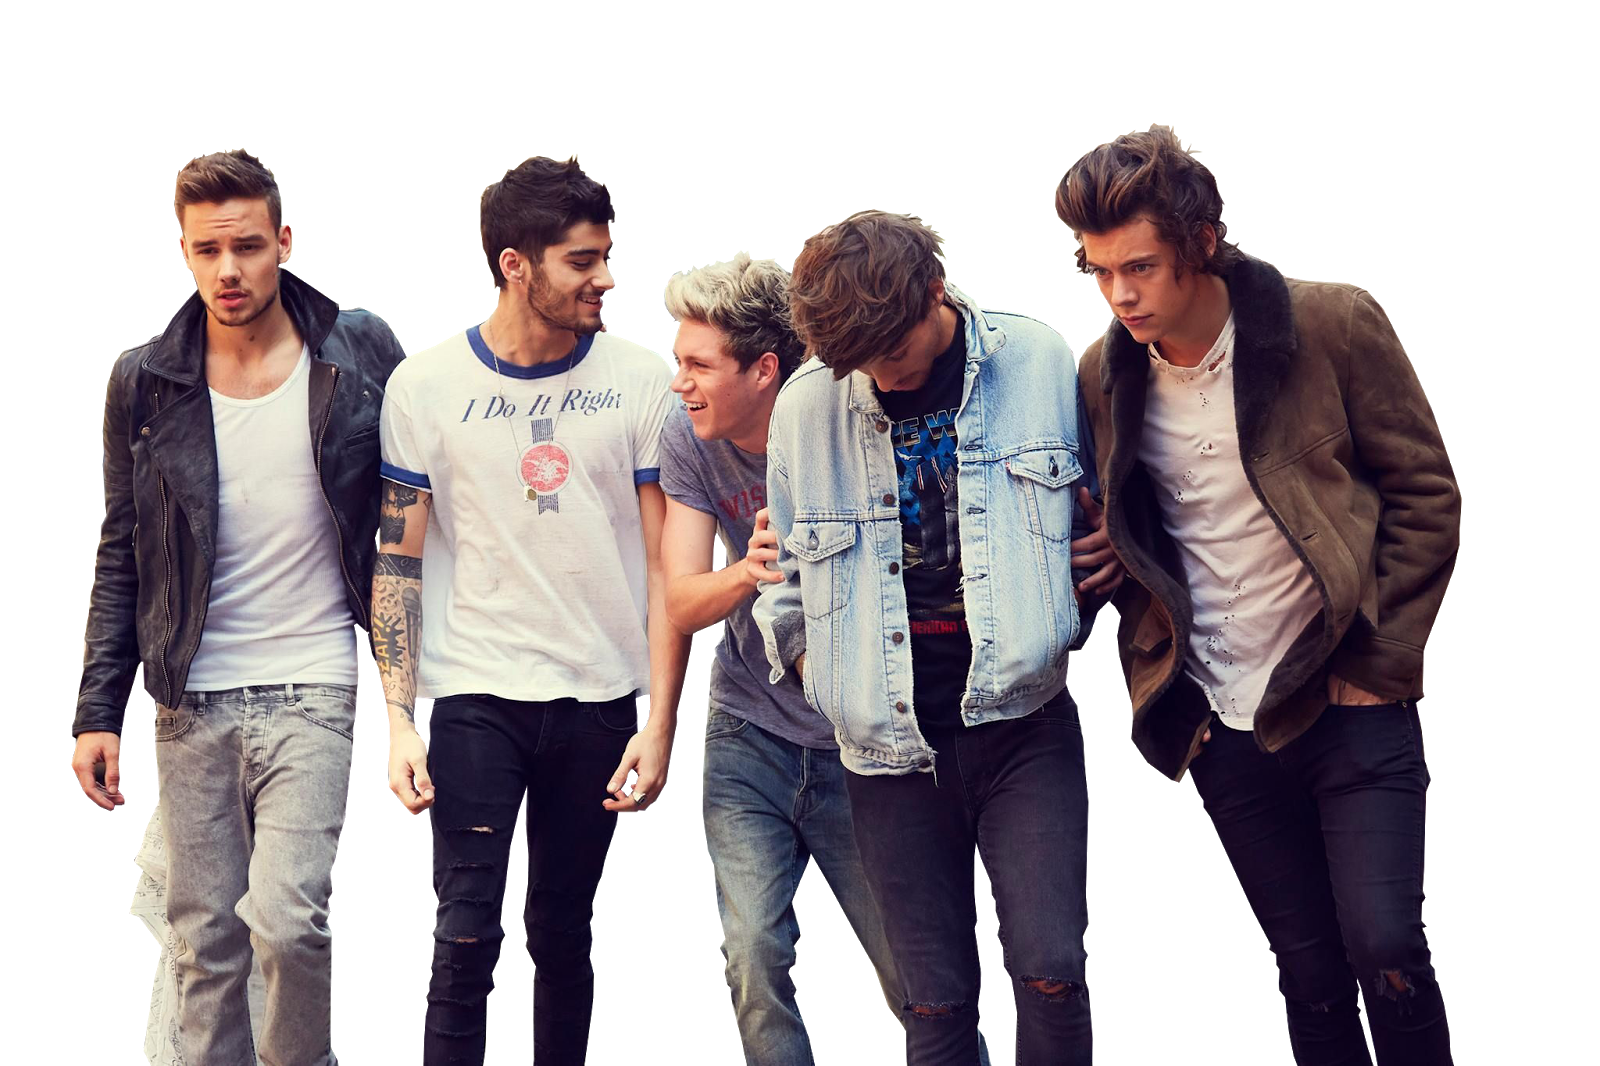 Png Book One Direction Photos One Direction Wallpaper One Direction